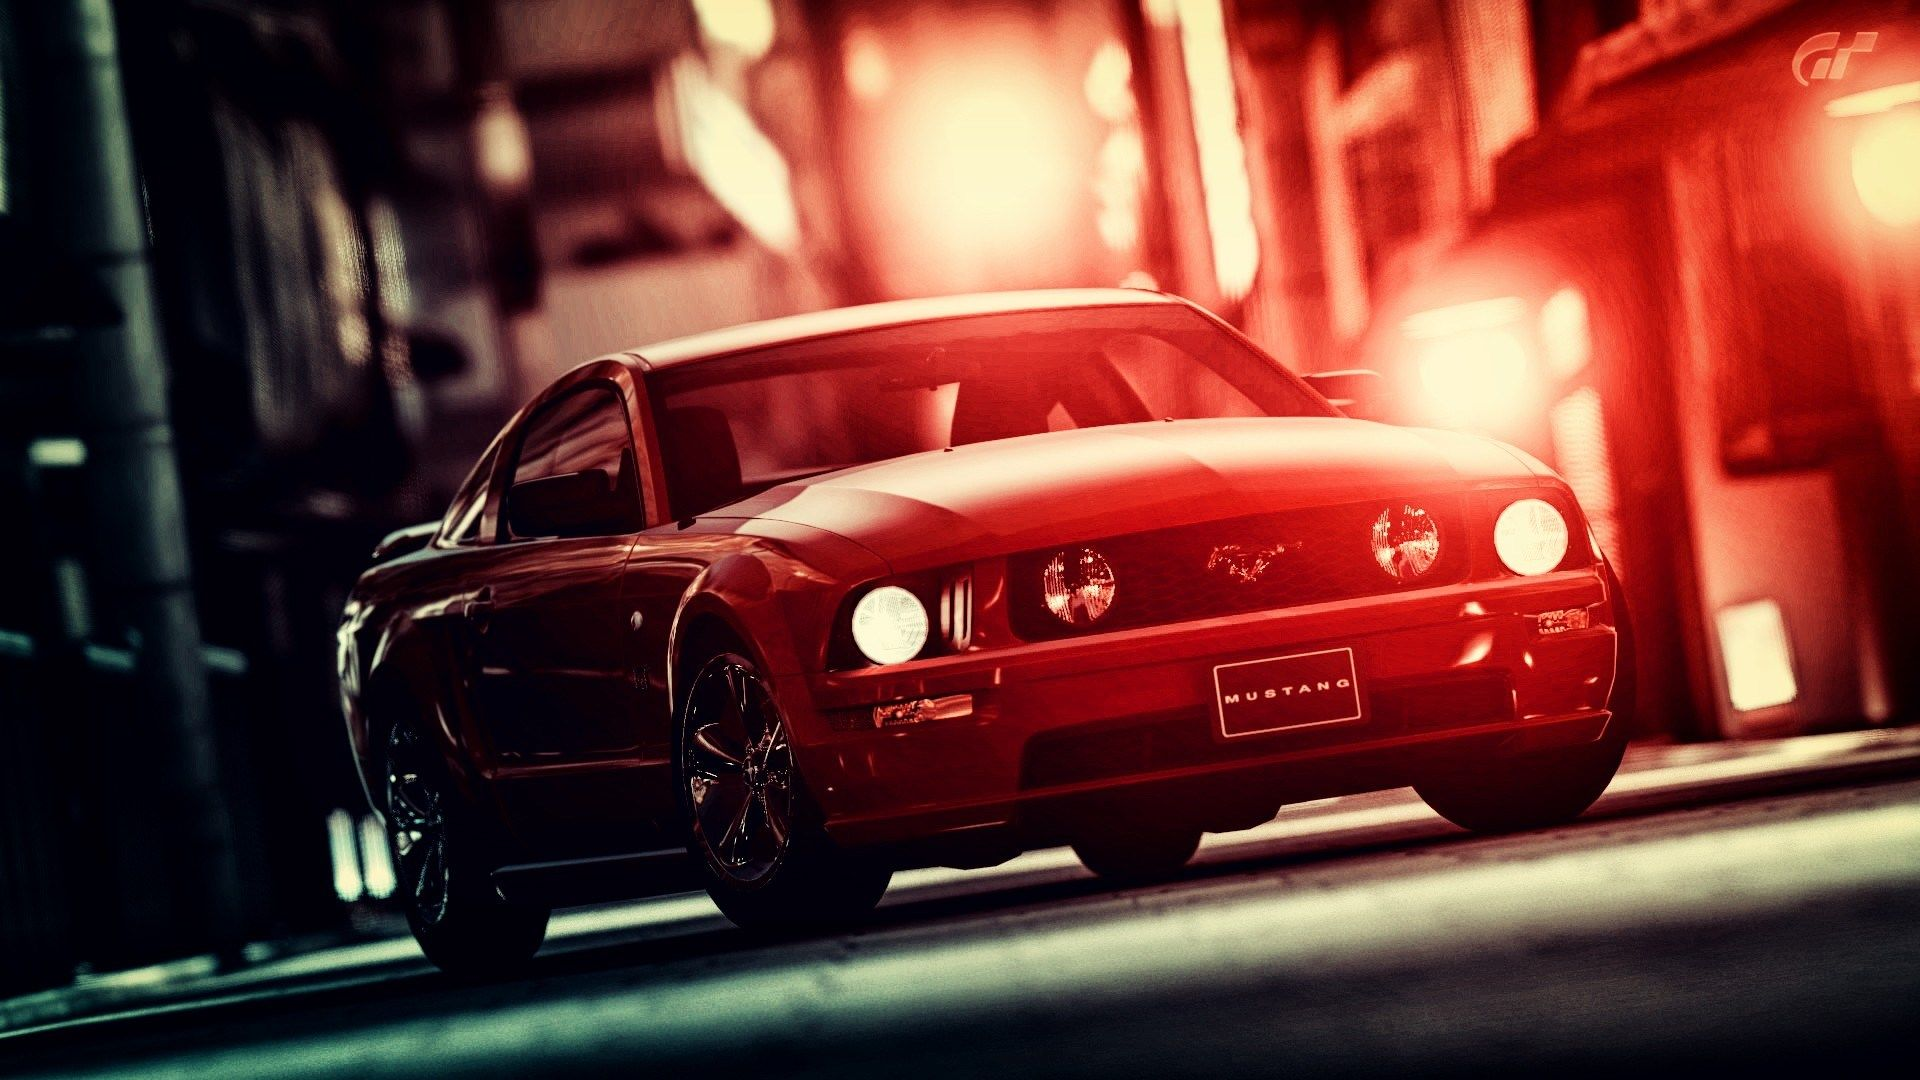 ford mustang pic desktop (fuller london 1920x1080) | sharovarka